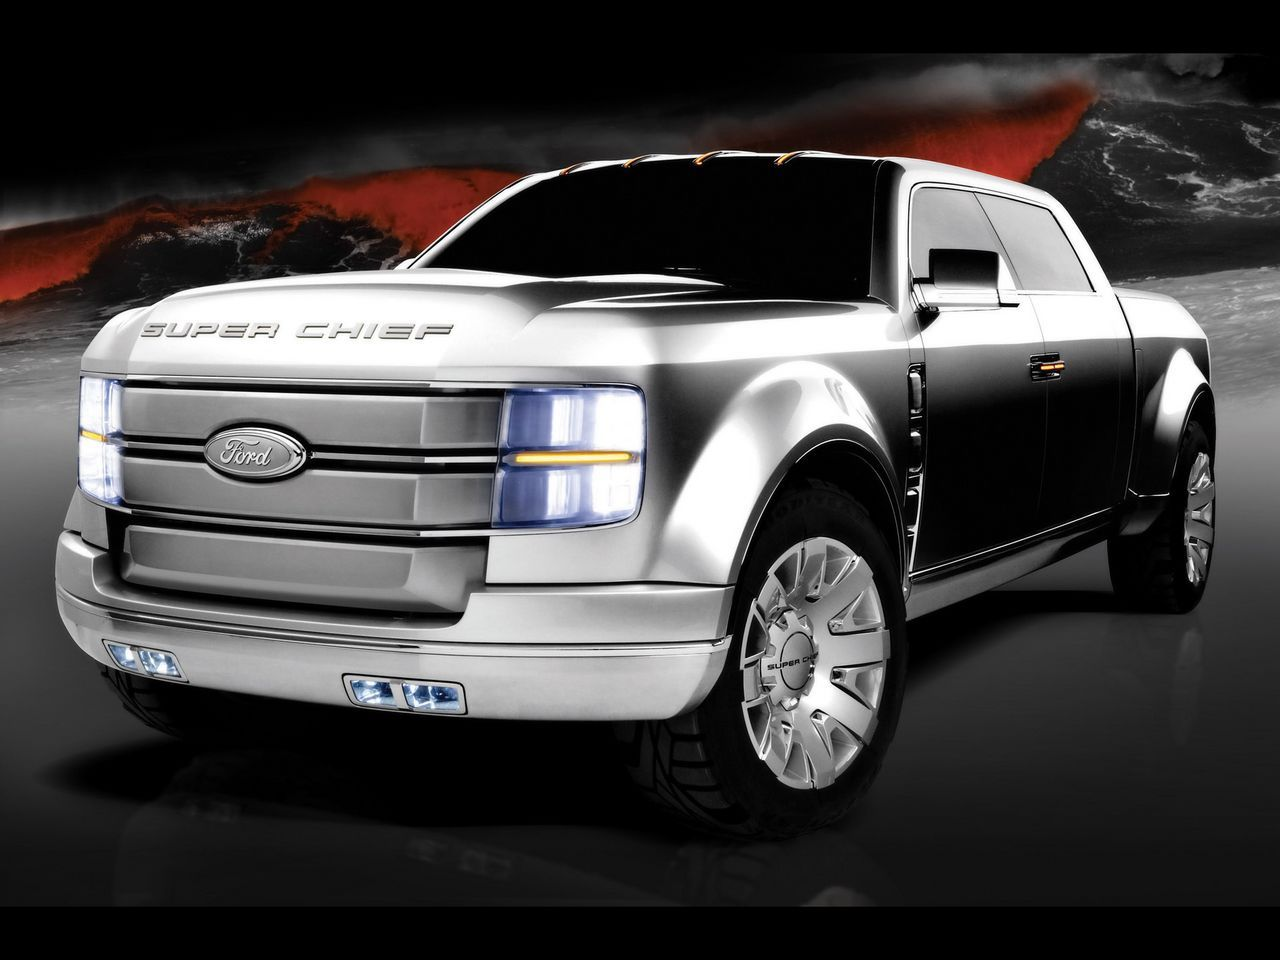 Ford Raptor Wallpaper Wallpapers For Free Download About